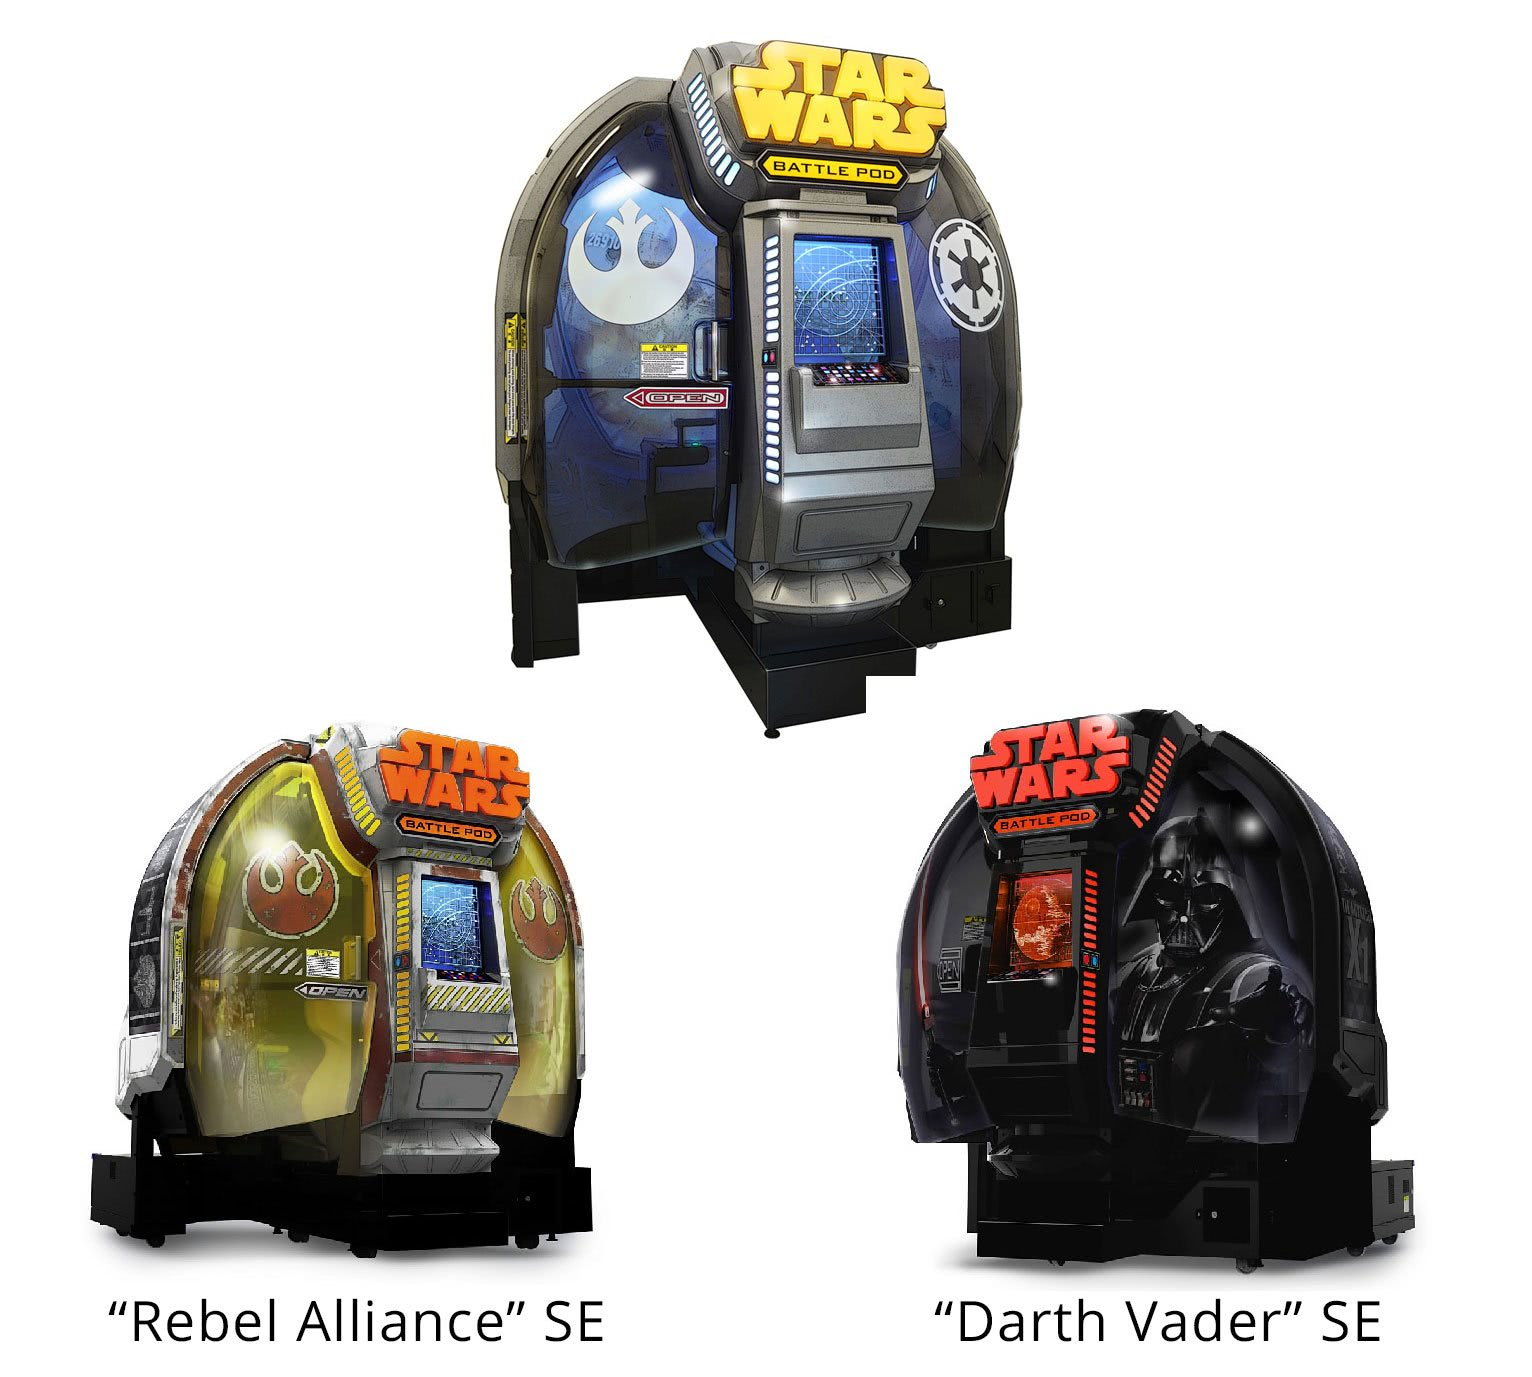 Star Wars Battle Pod Arcade Machine Liberty Games